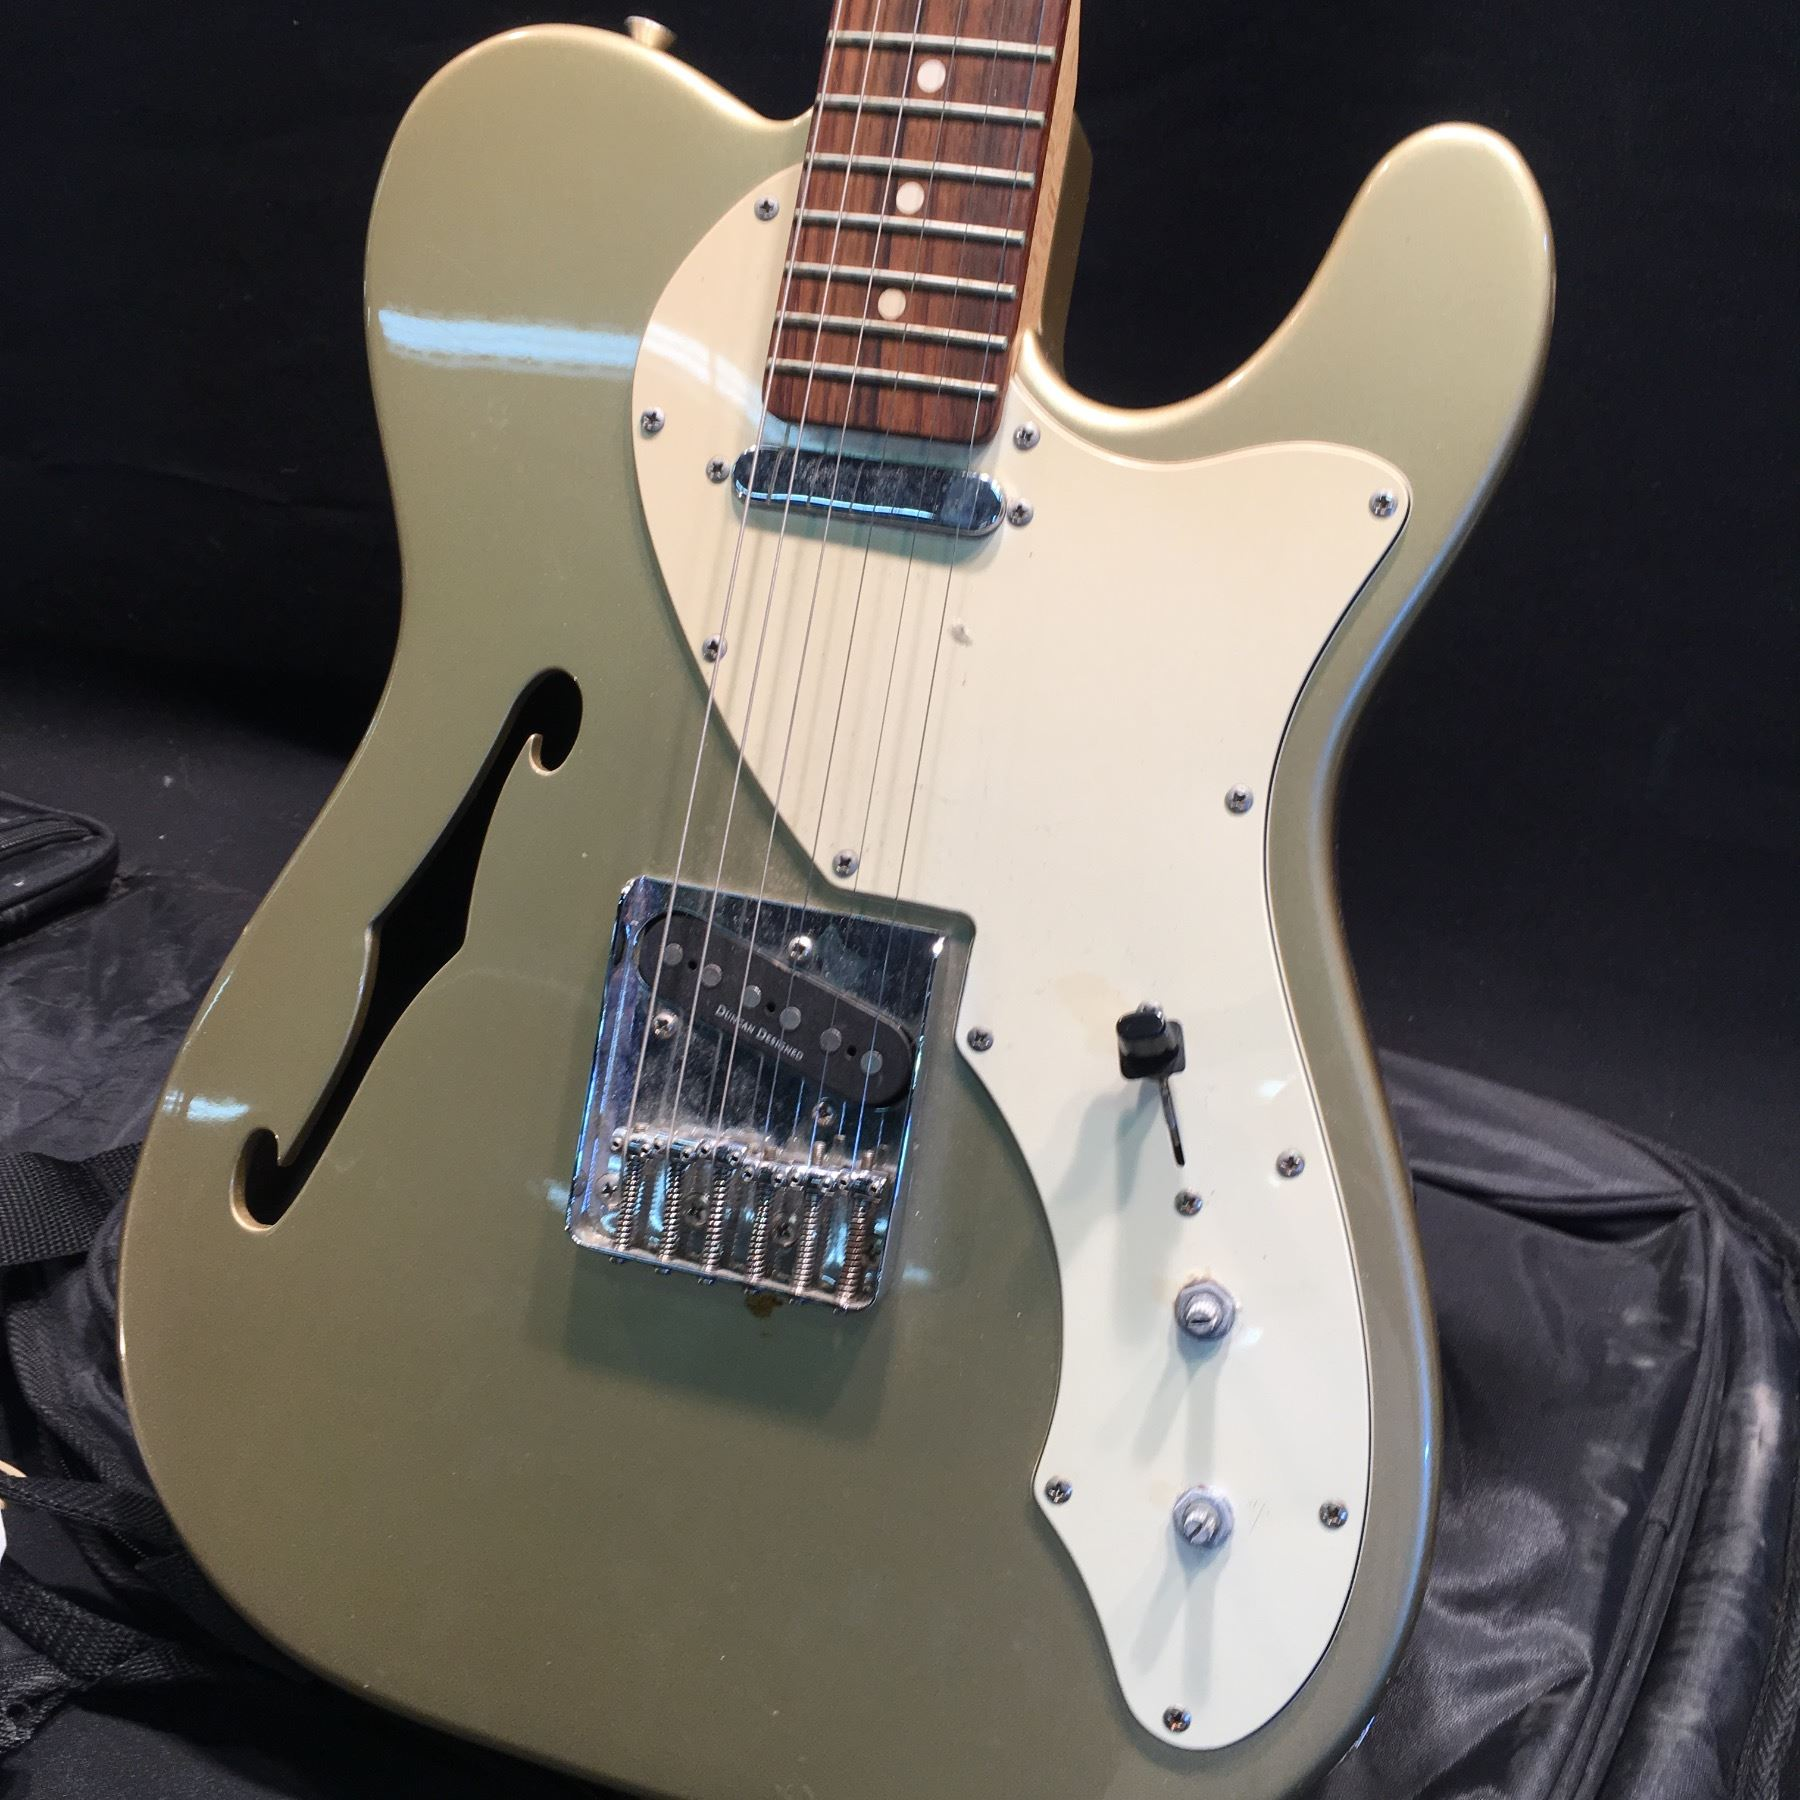 fender squier telecaster semi hollow body electric guitar with two single coil pickups ashtray. Black Bedroom Furniture Sets. Home Design Ideas